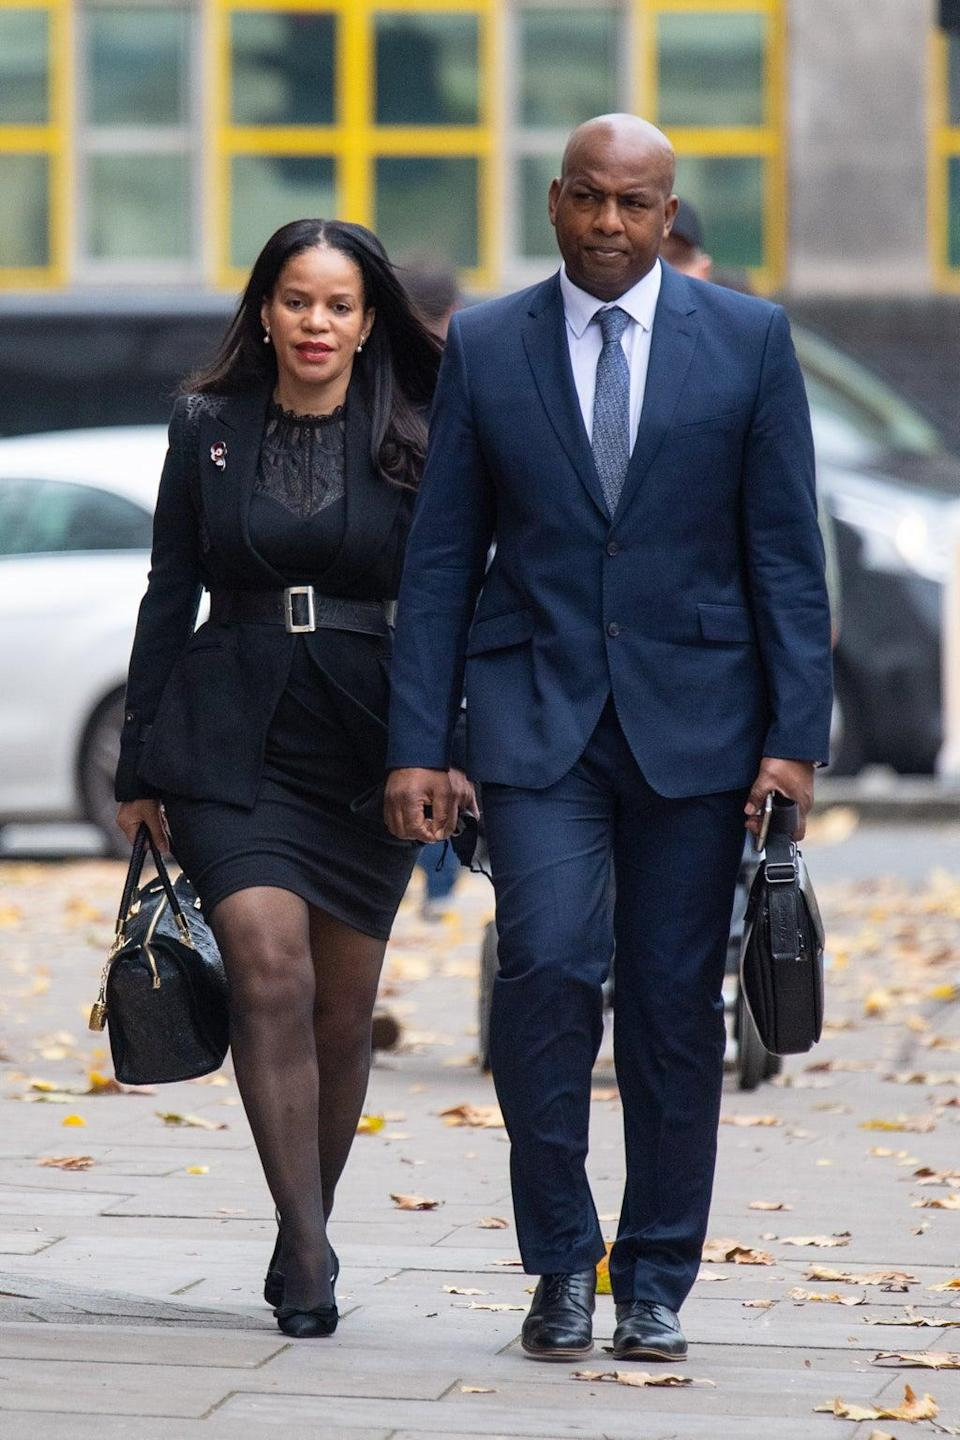 Leicester East MP Claudia Webbe arrives at Westminster Magistrates' Court (Dominic Lipinski/PA) (PA Archive)